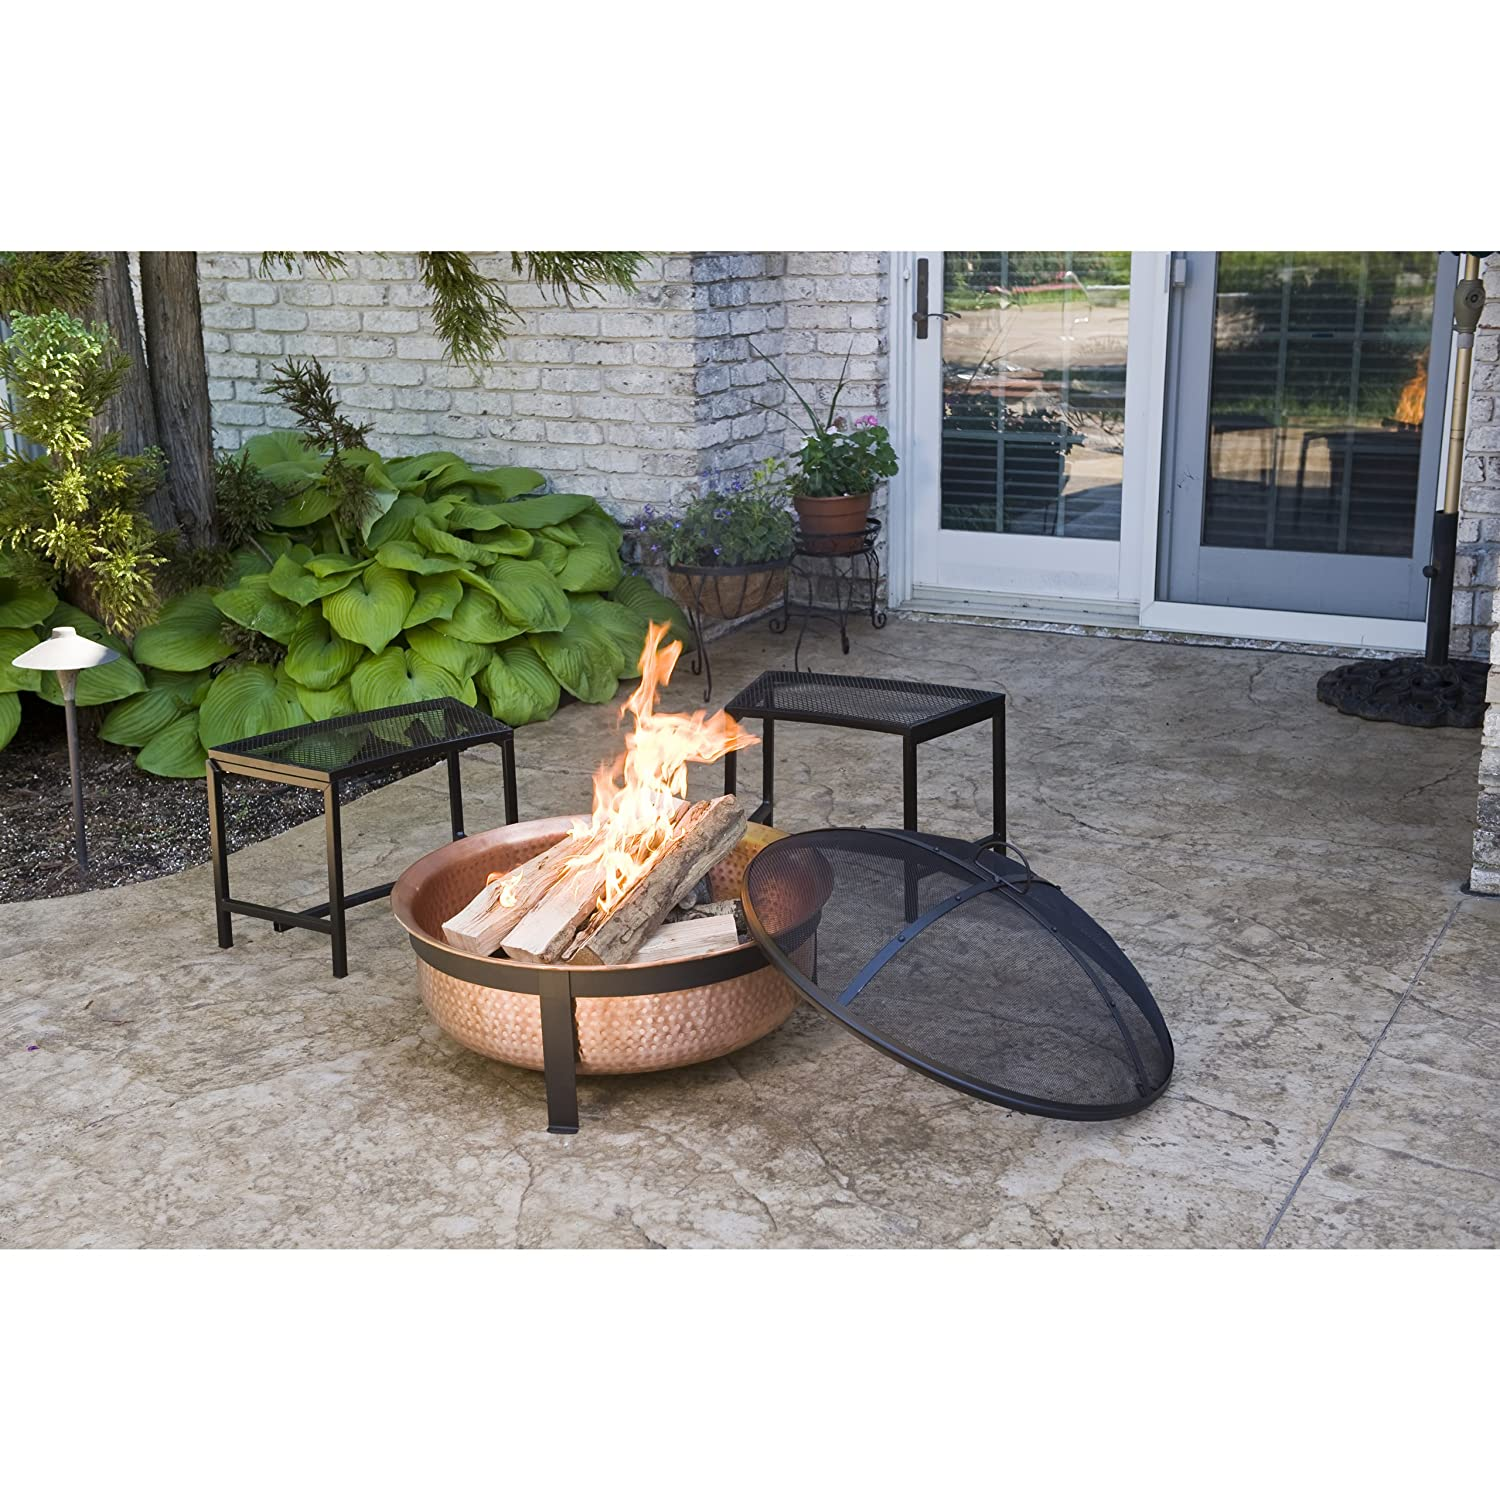 CobraCo SH101 Hand Hammered 100% Copper Fire Pit with Screen and Cover